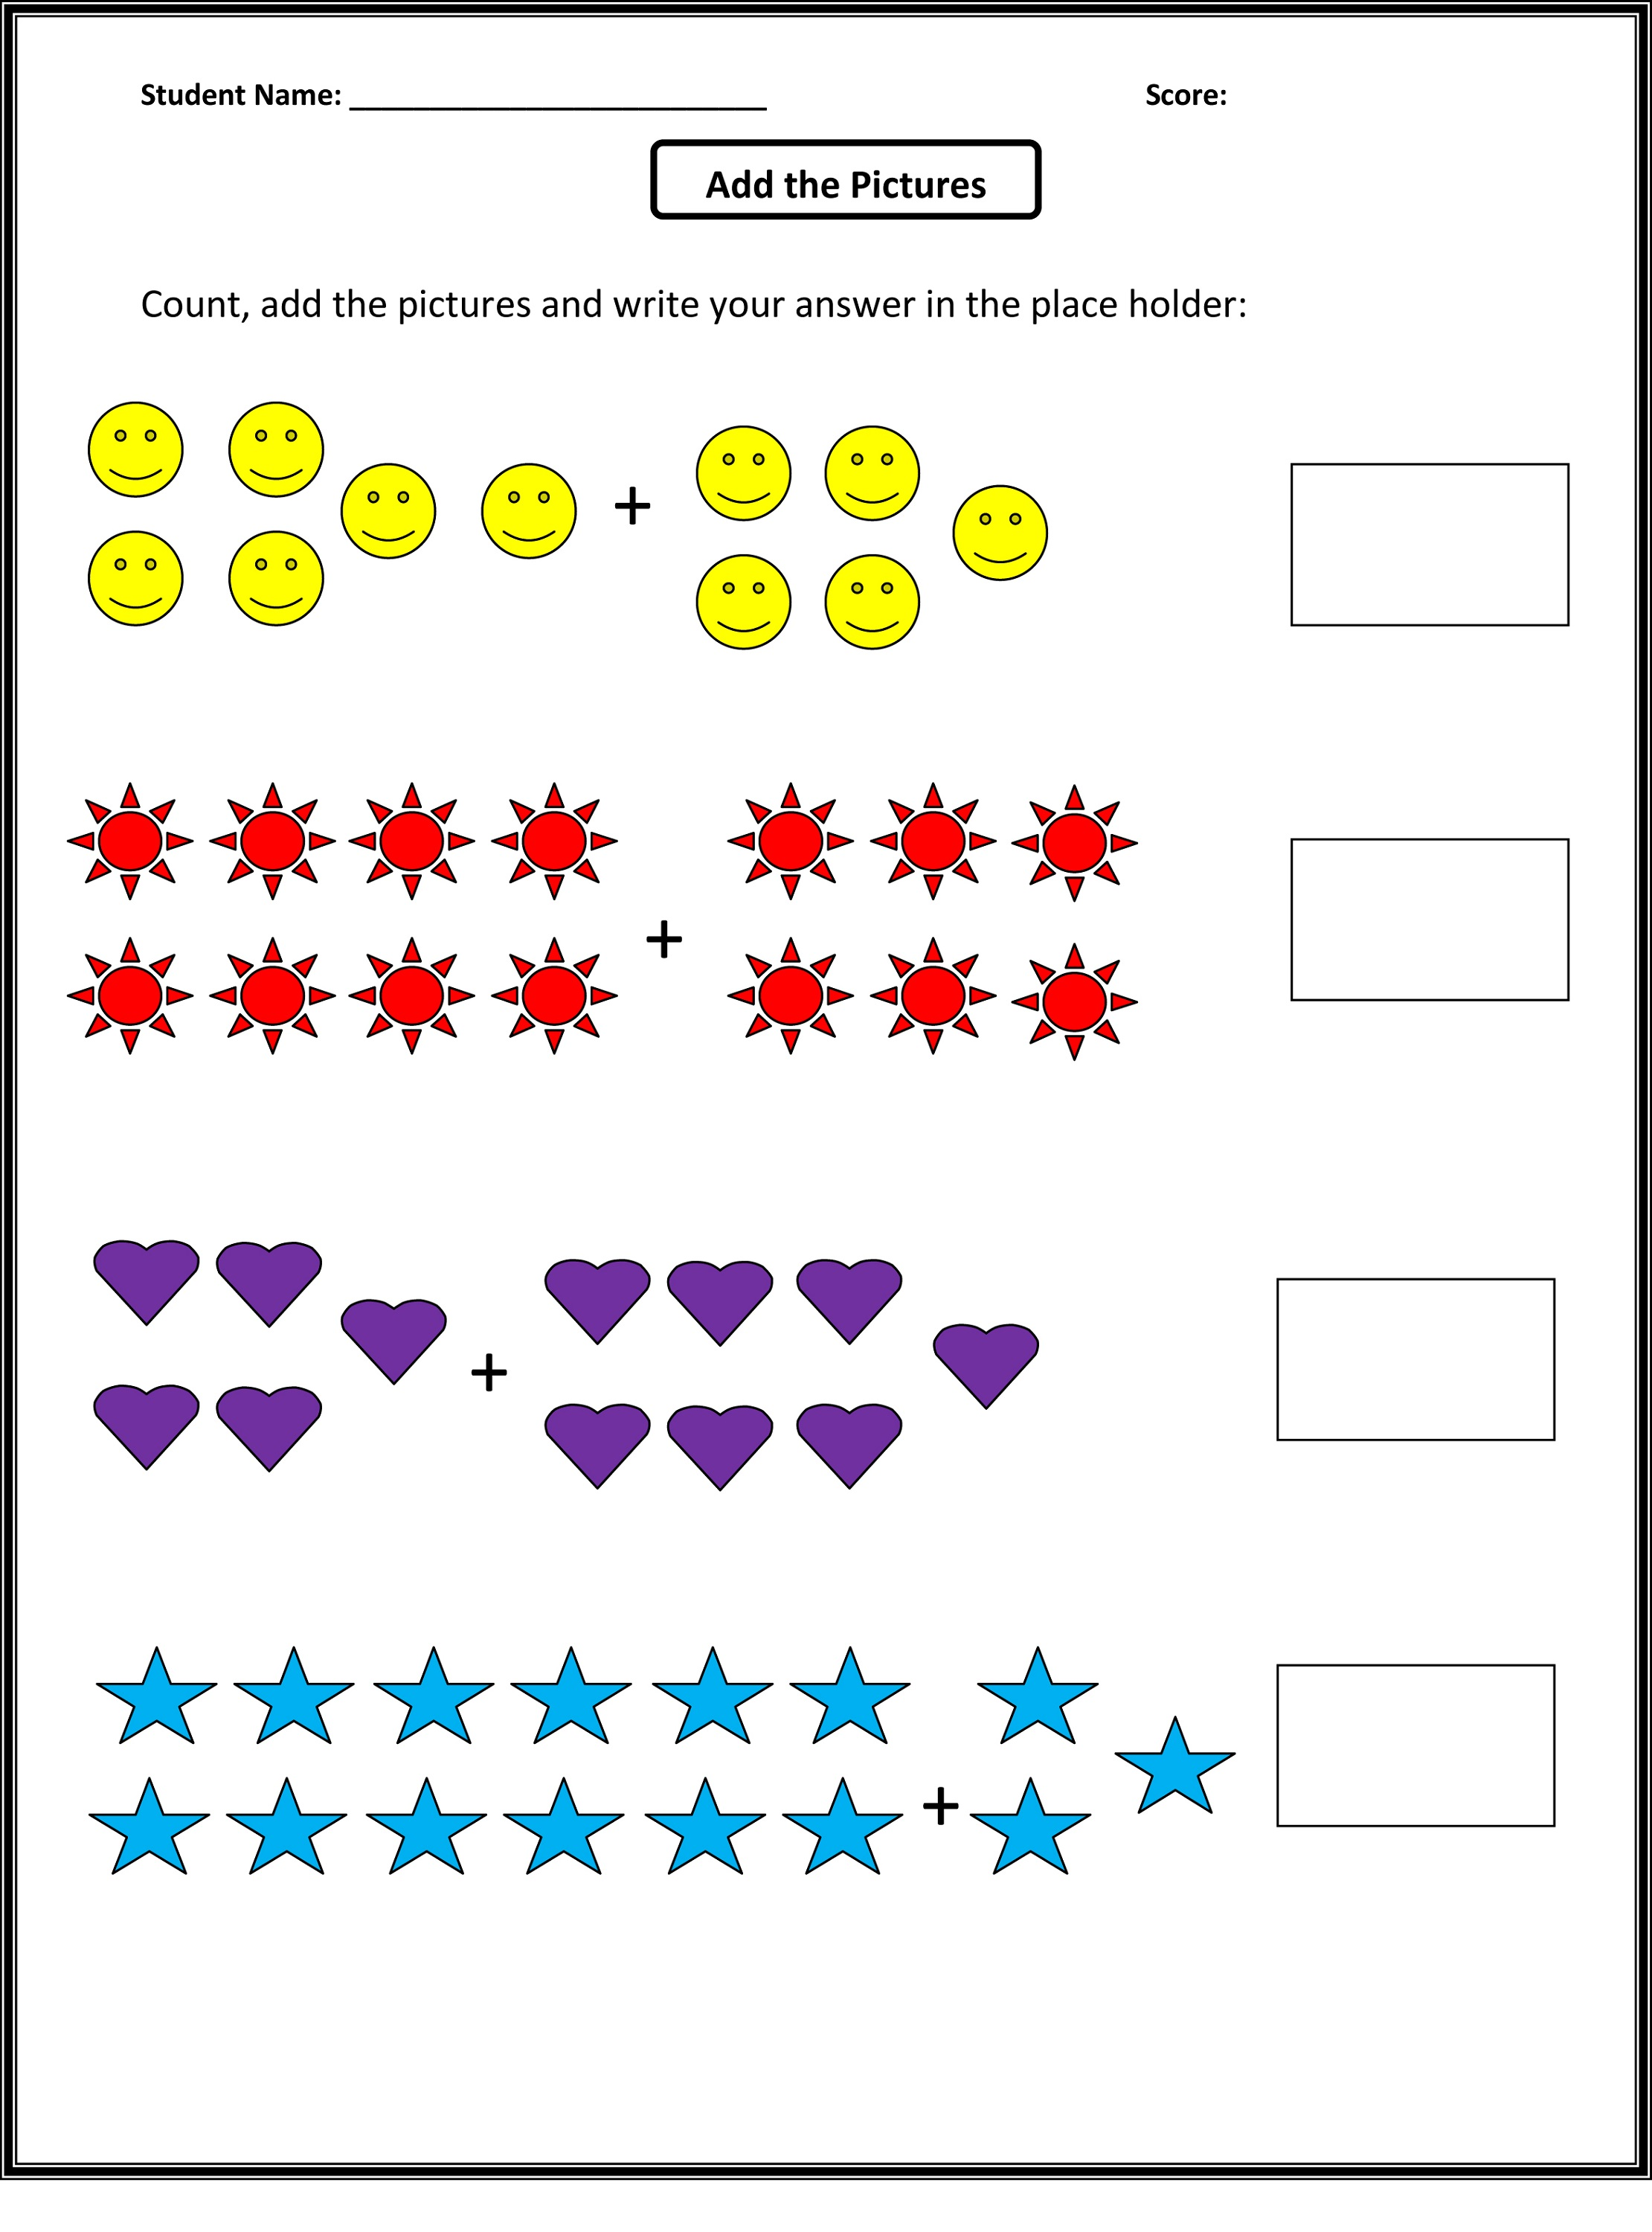 Math Sheets For Kids Scalien – Printable Maths Worksheets for Kids